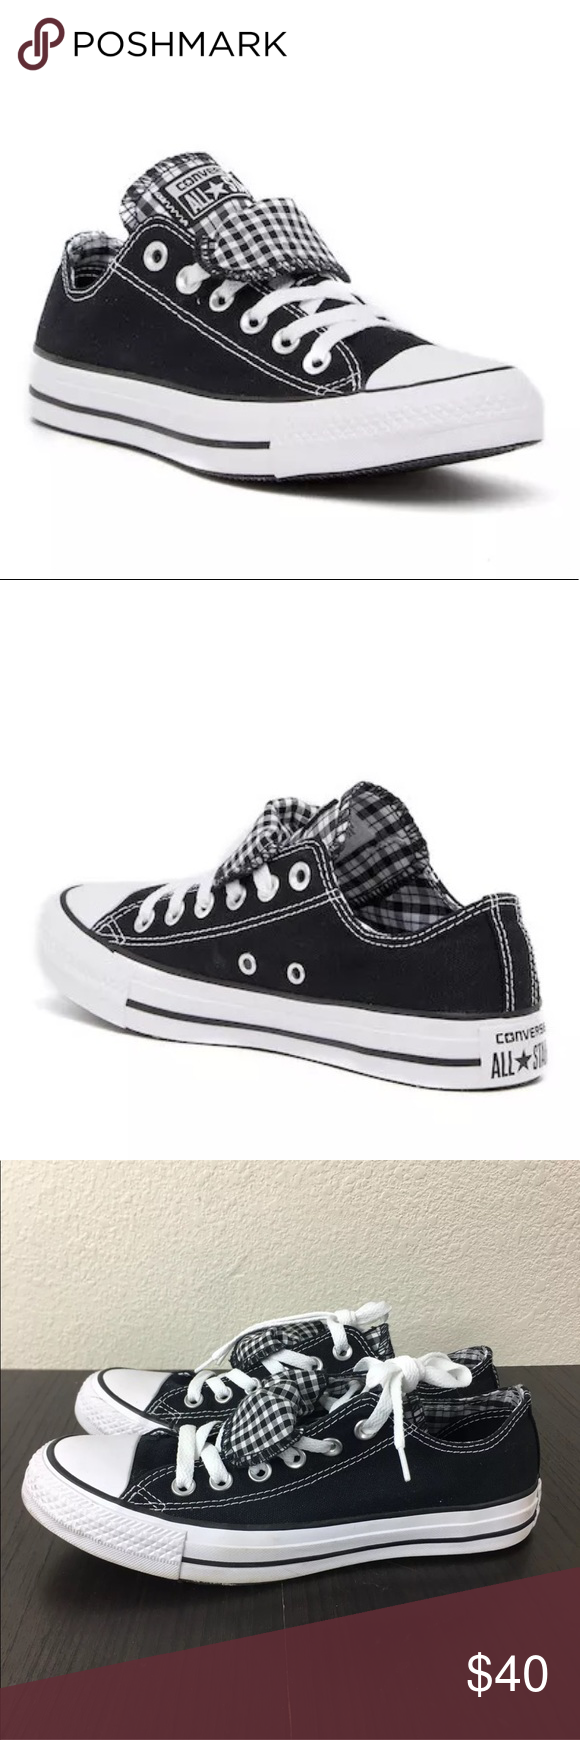 Converse Chuck All Star Double Tongue Sneaker 7 Womens